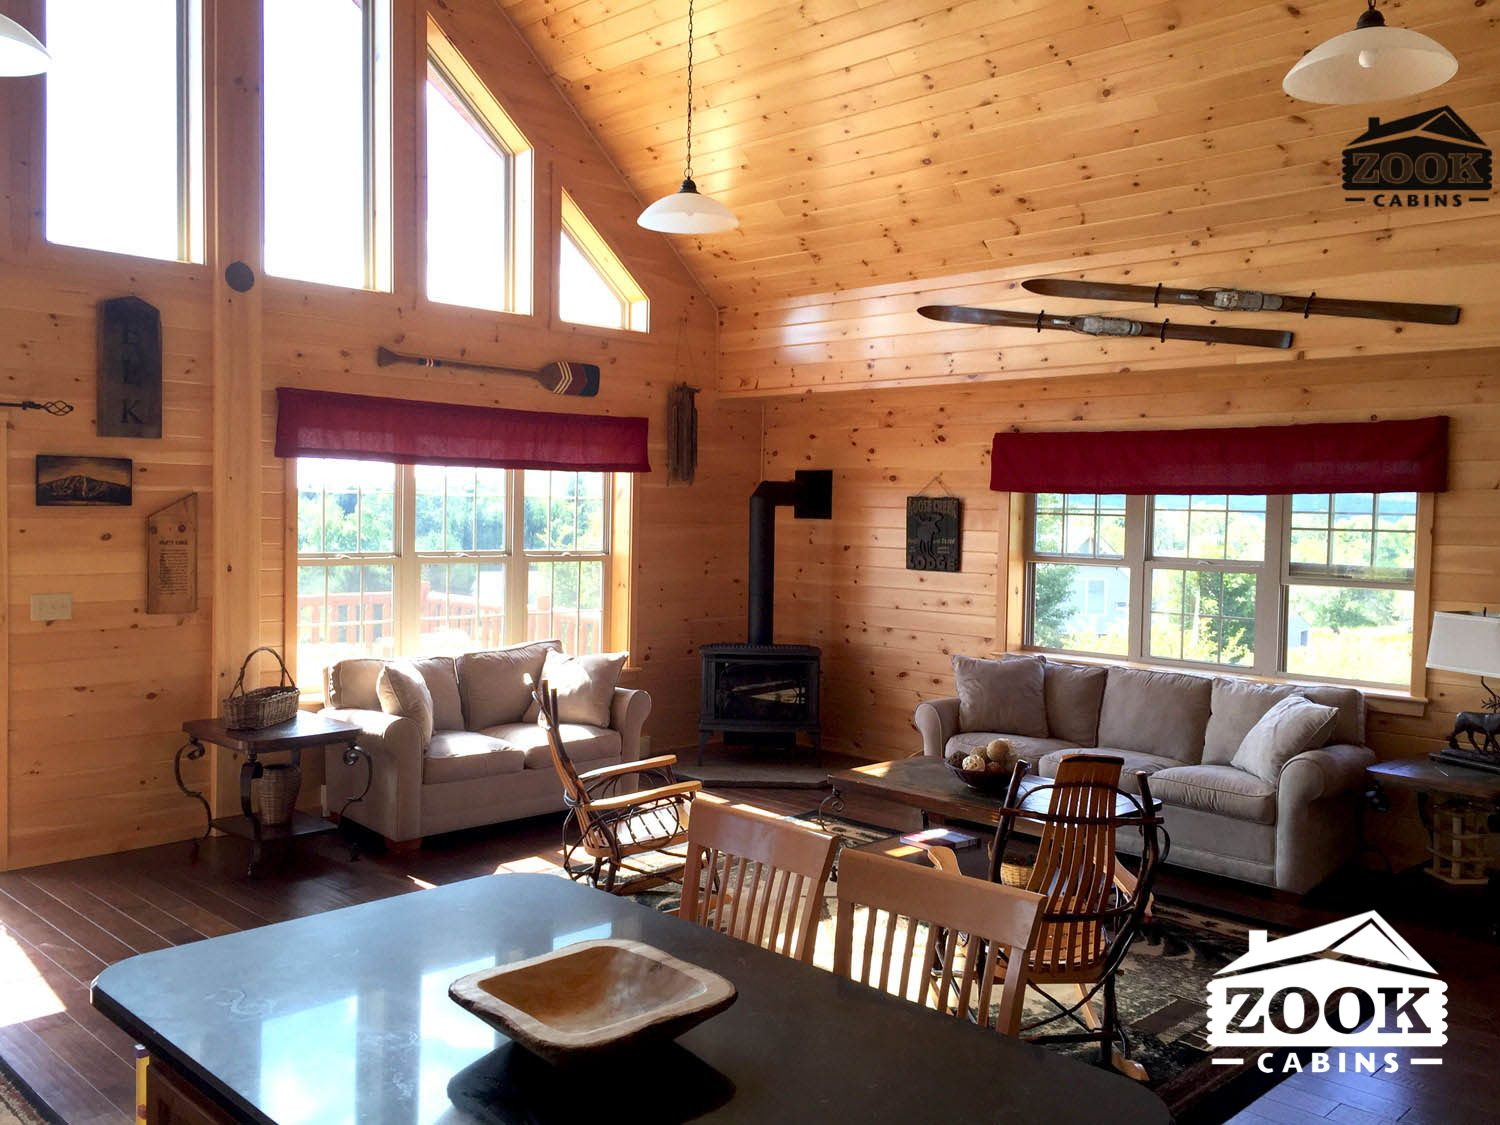 The Living room will make you love cabin living